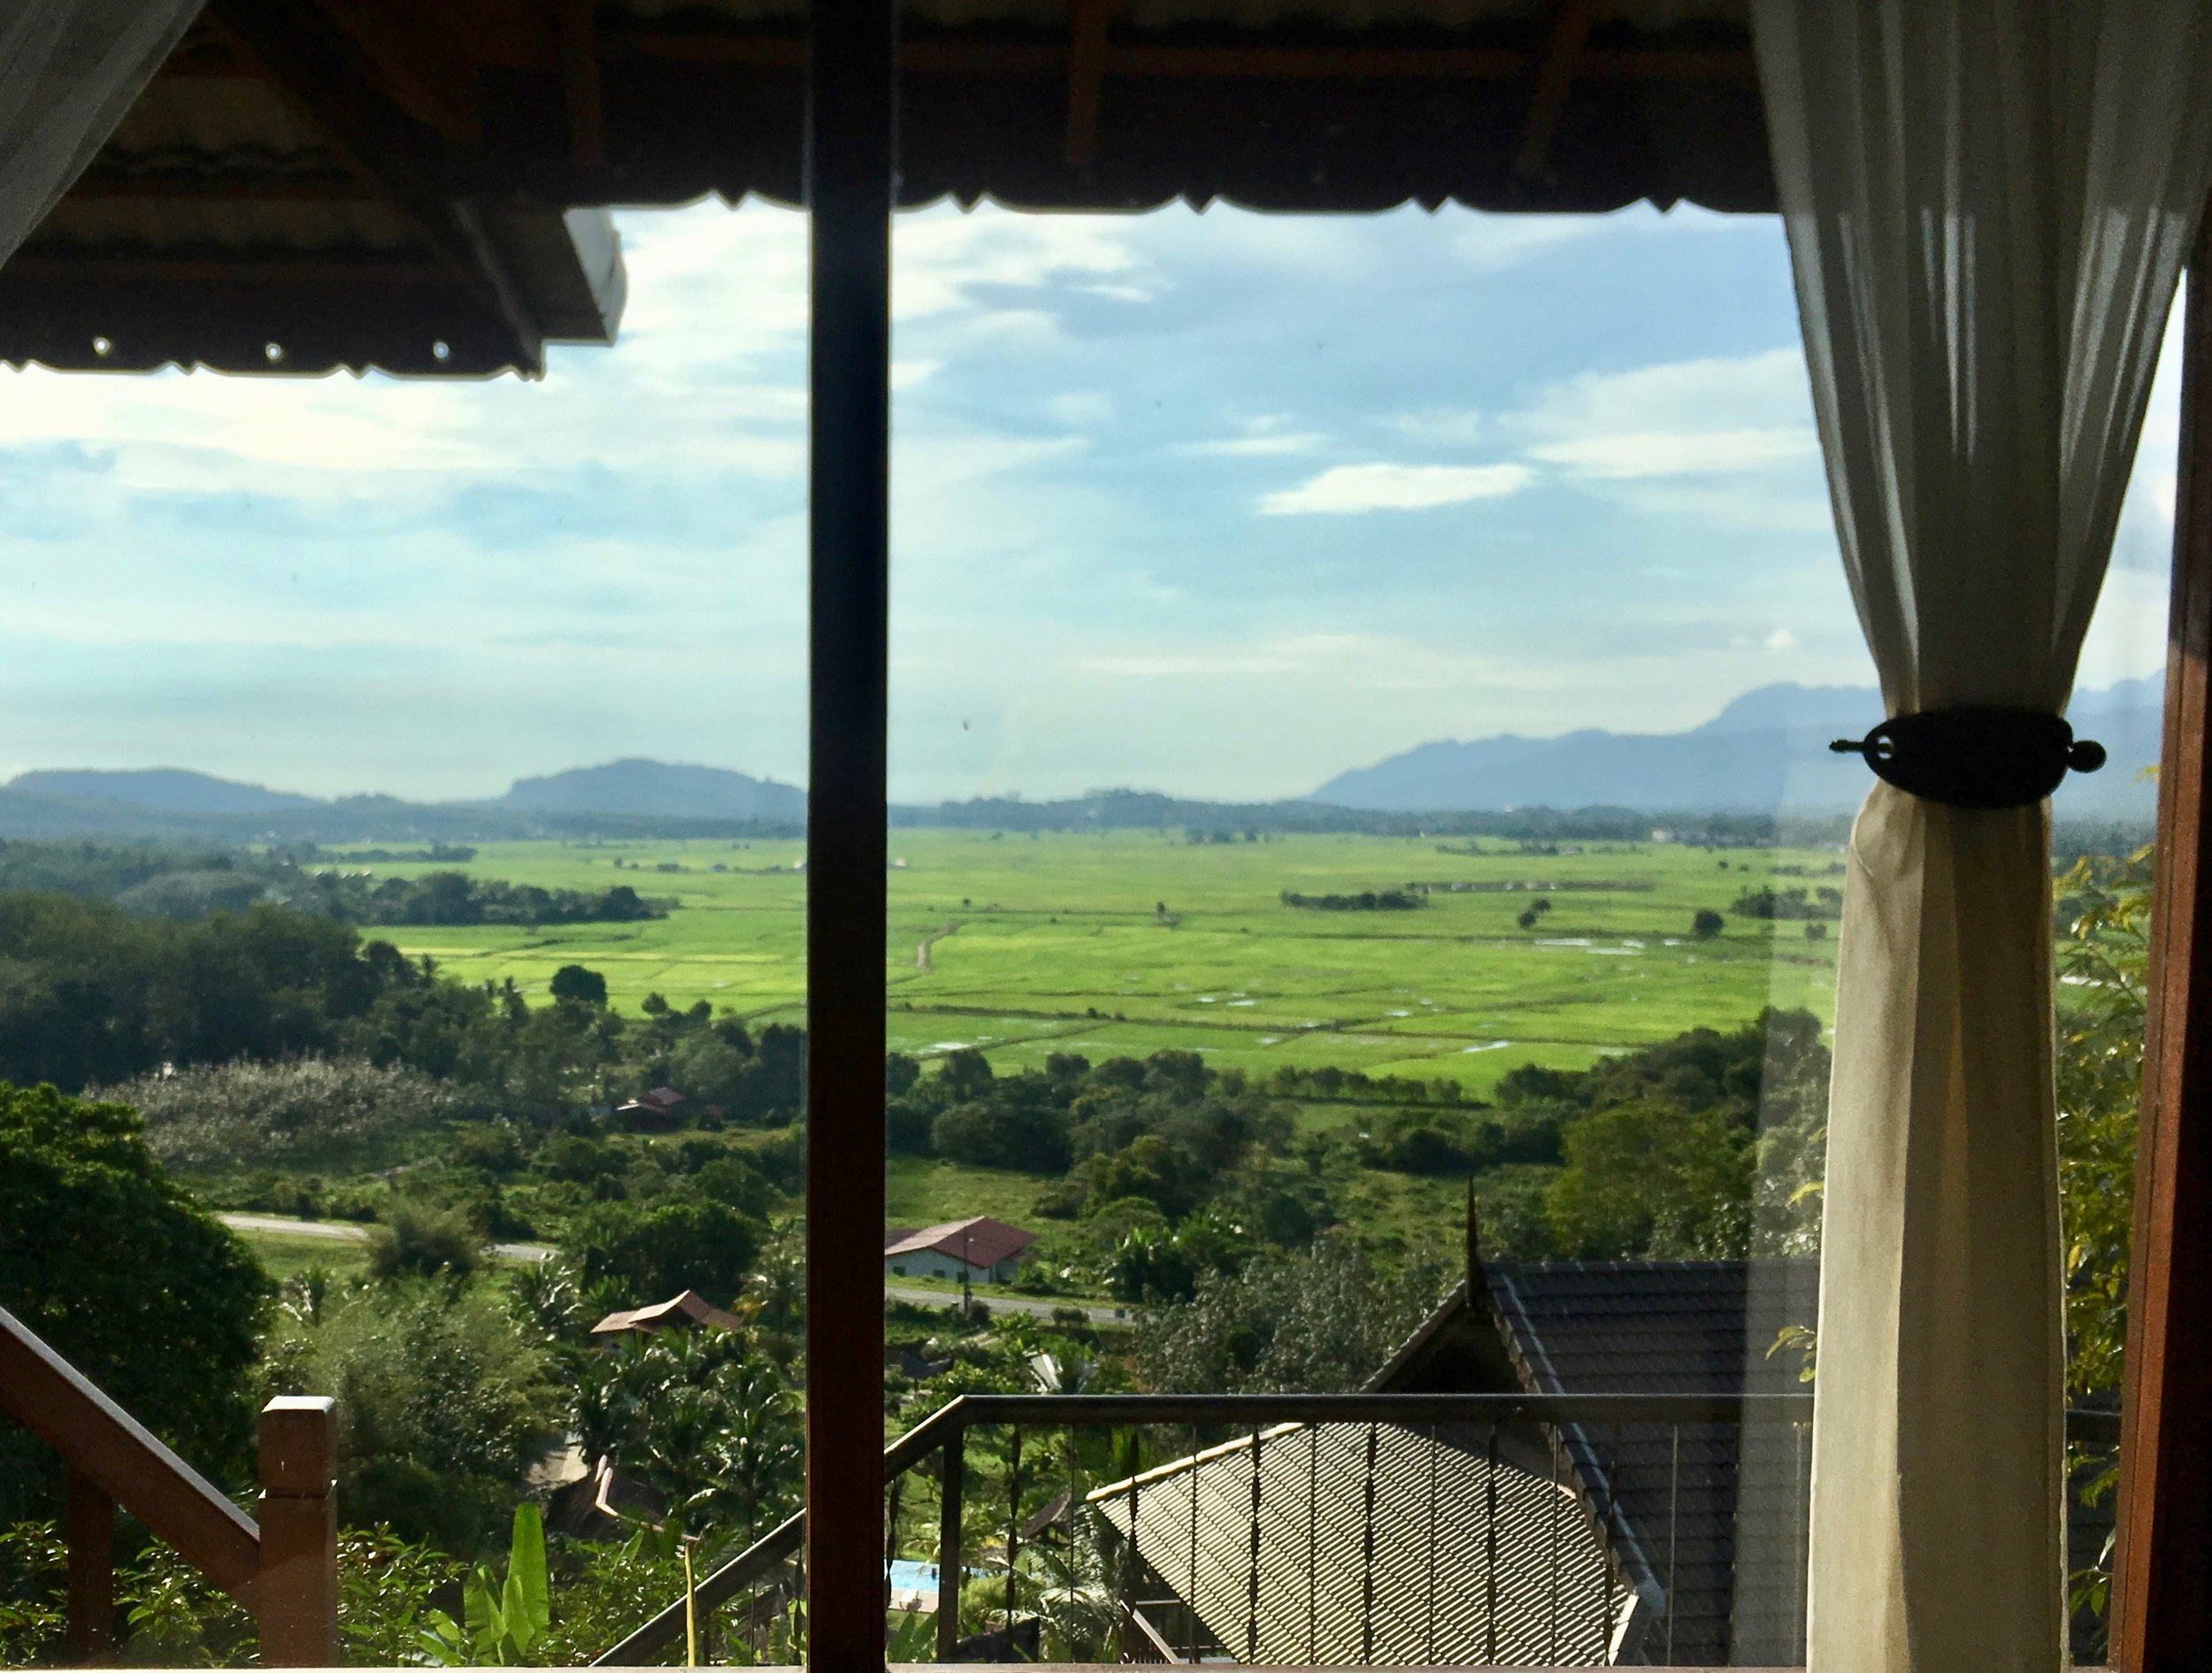 The view from our AirBnB in Langkawi... not a bad place for a workaway I'd say!